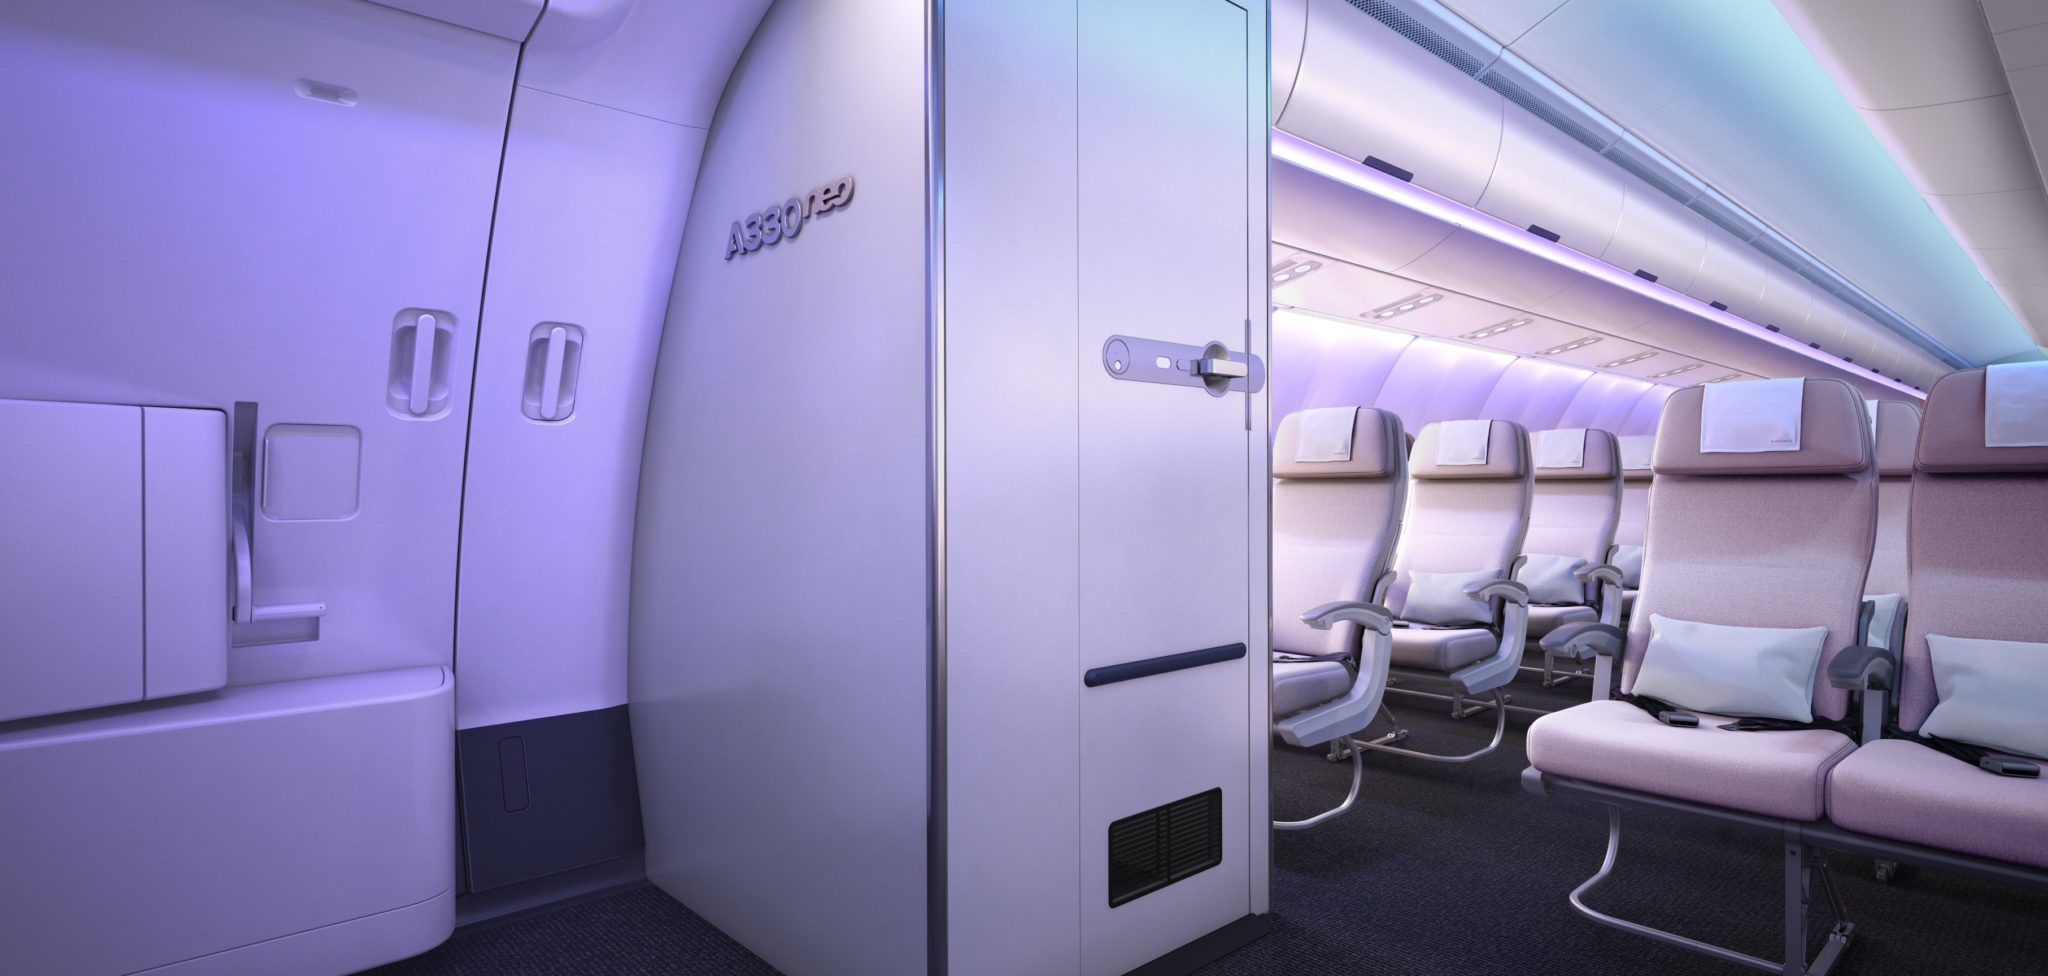 What truly smart options exist around lavatory placement? Image: Airbus